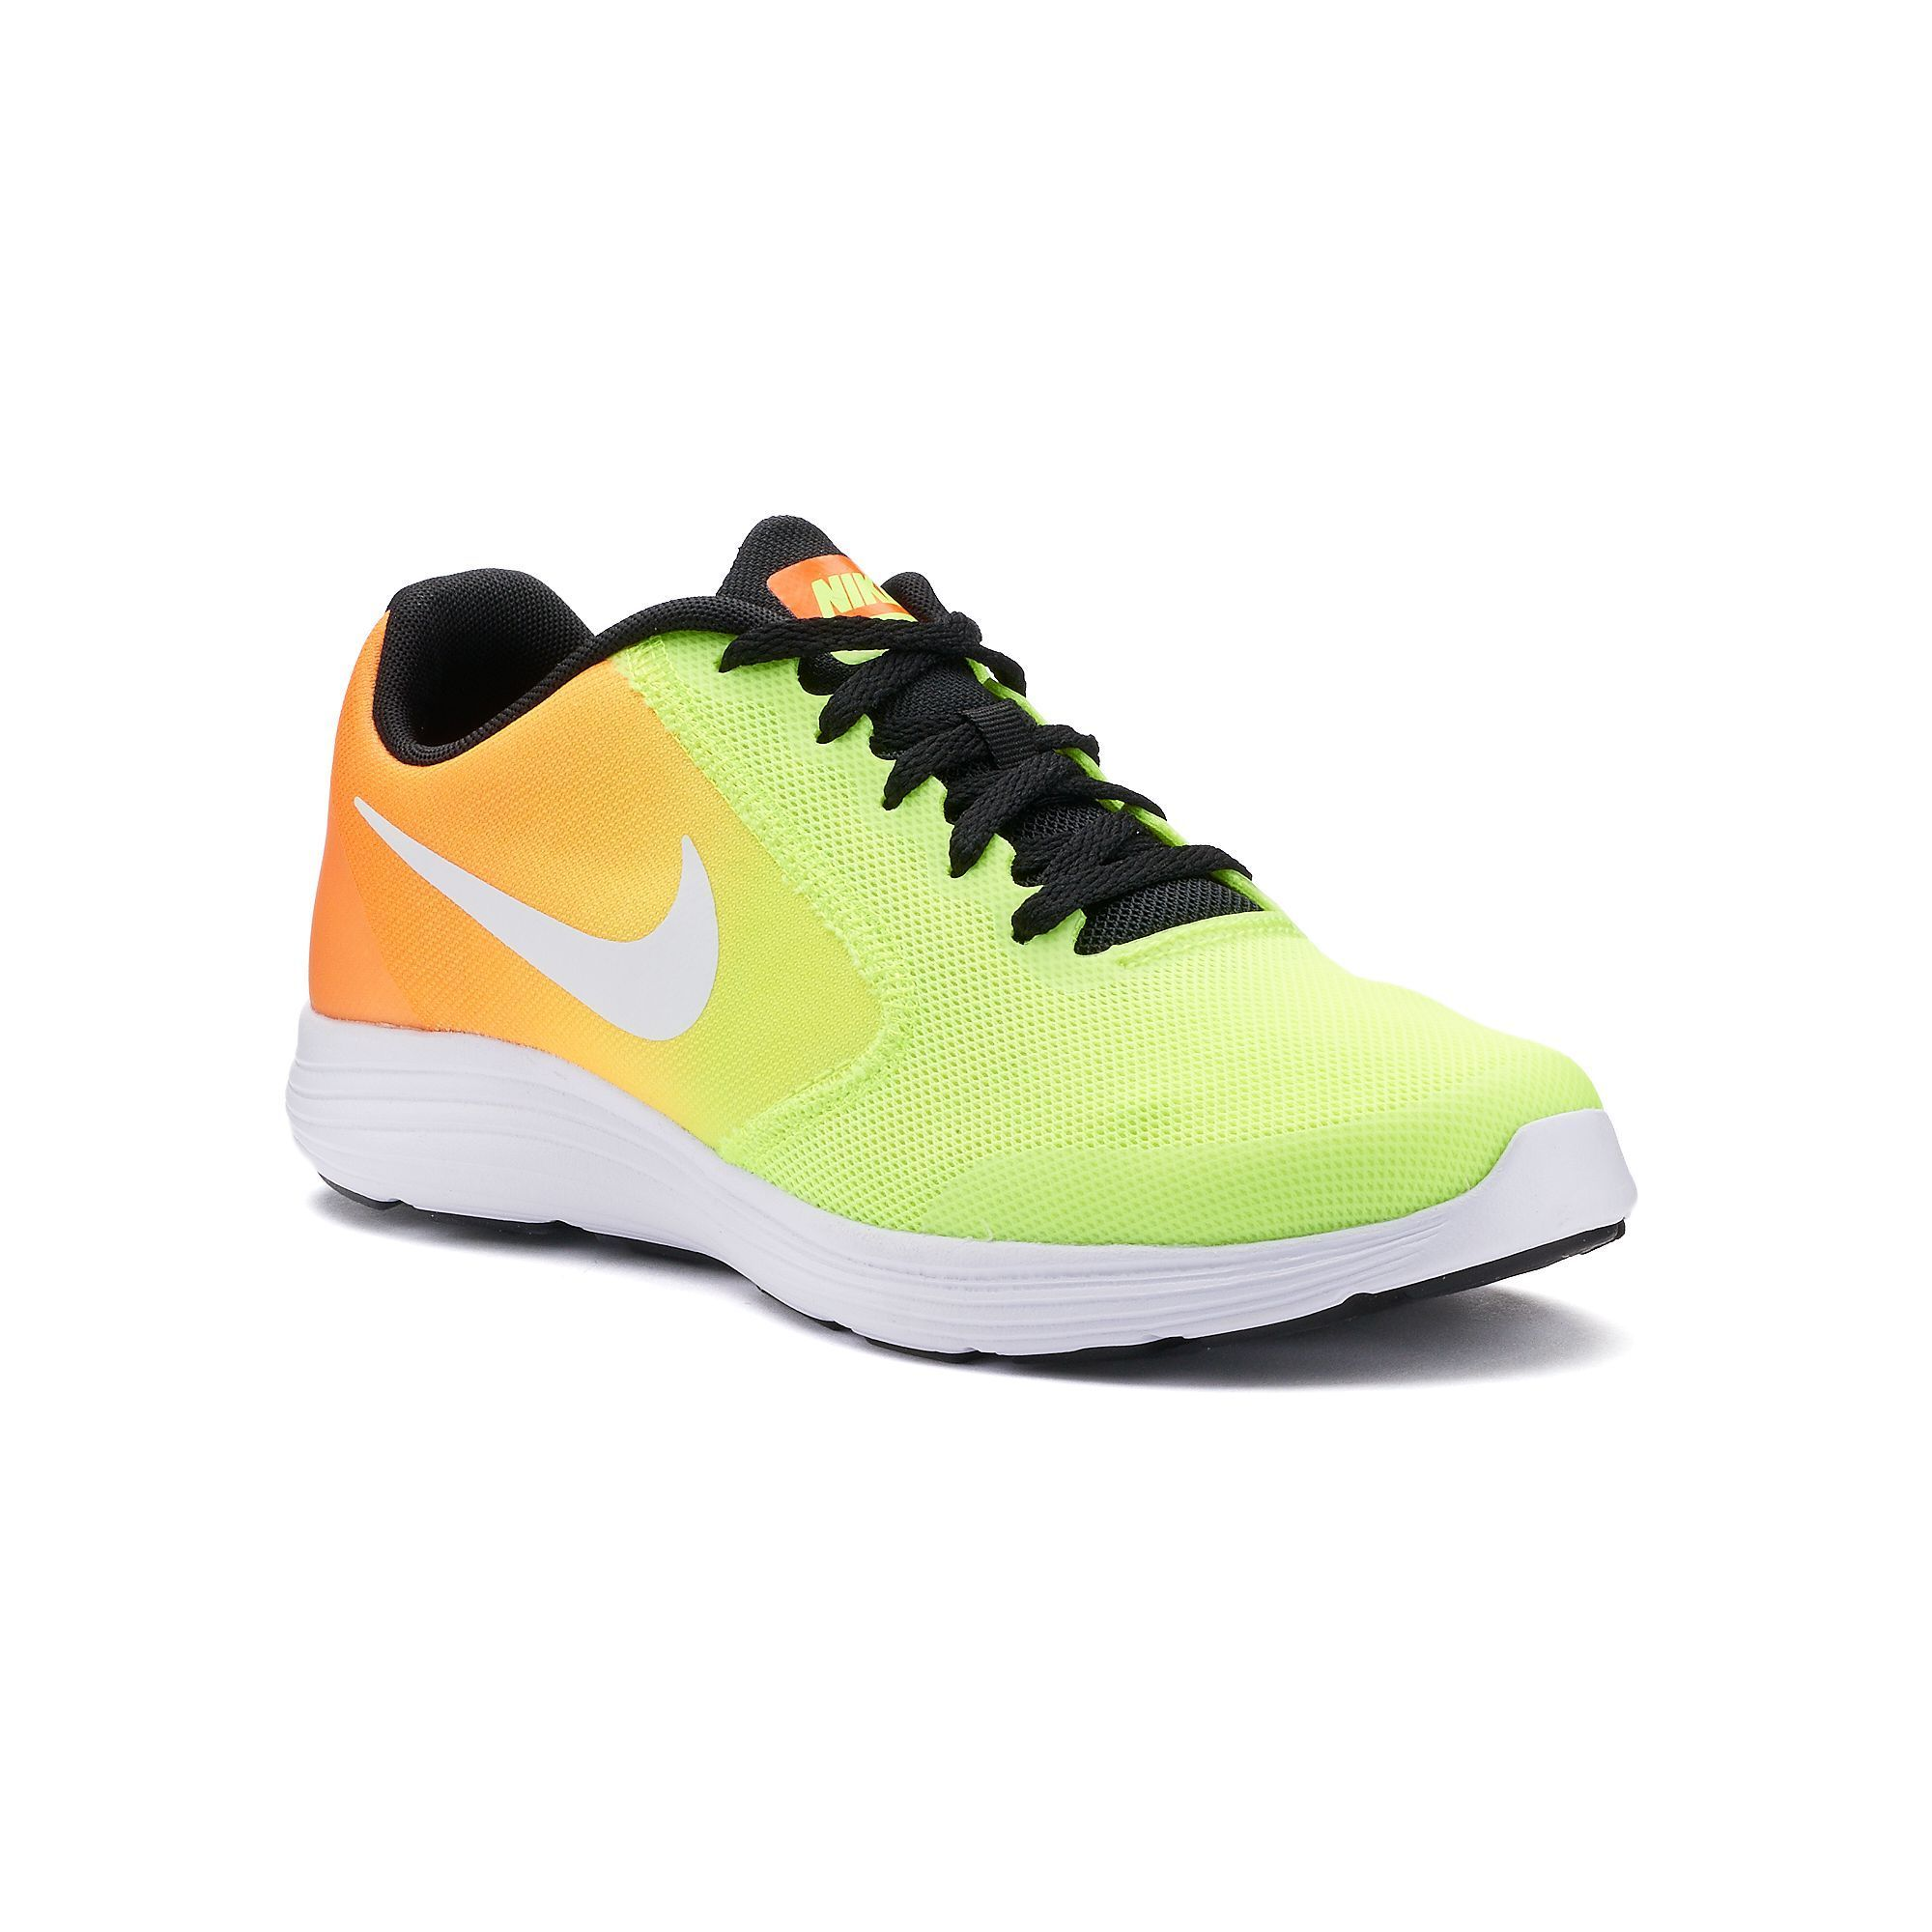 8f91f08ffbdf Nike Revolution 3 Grade-School Boys  Running Shoes